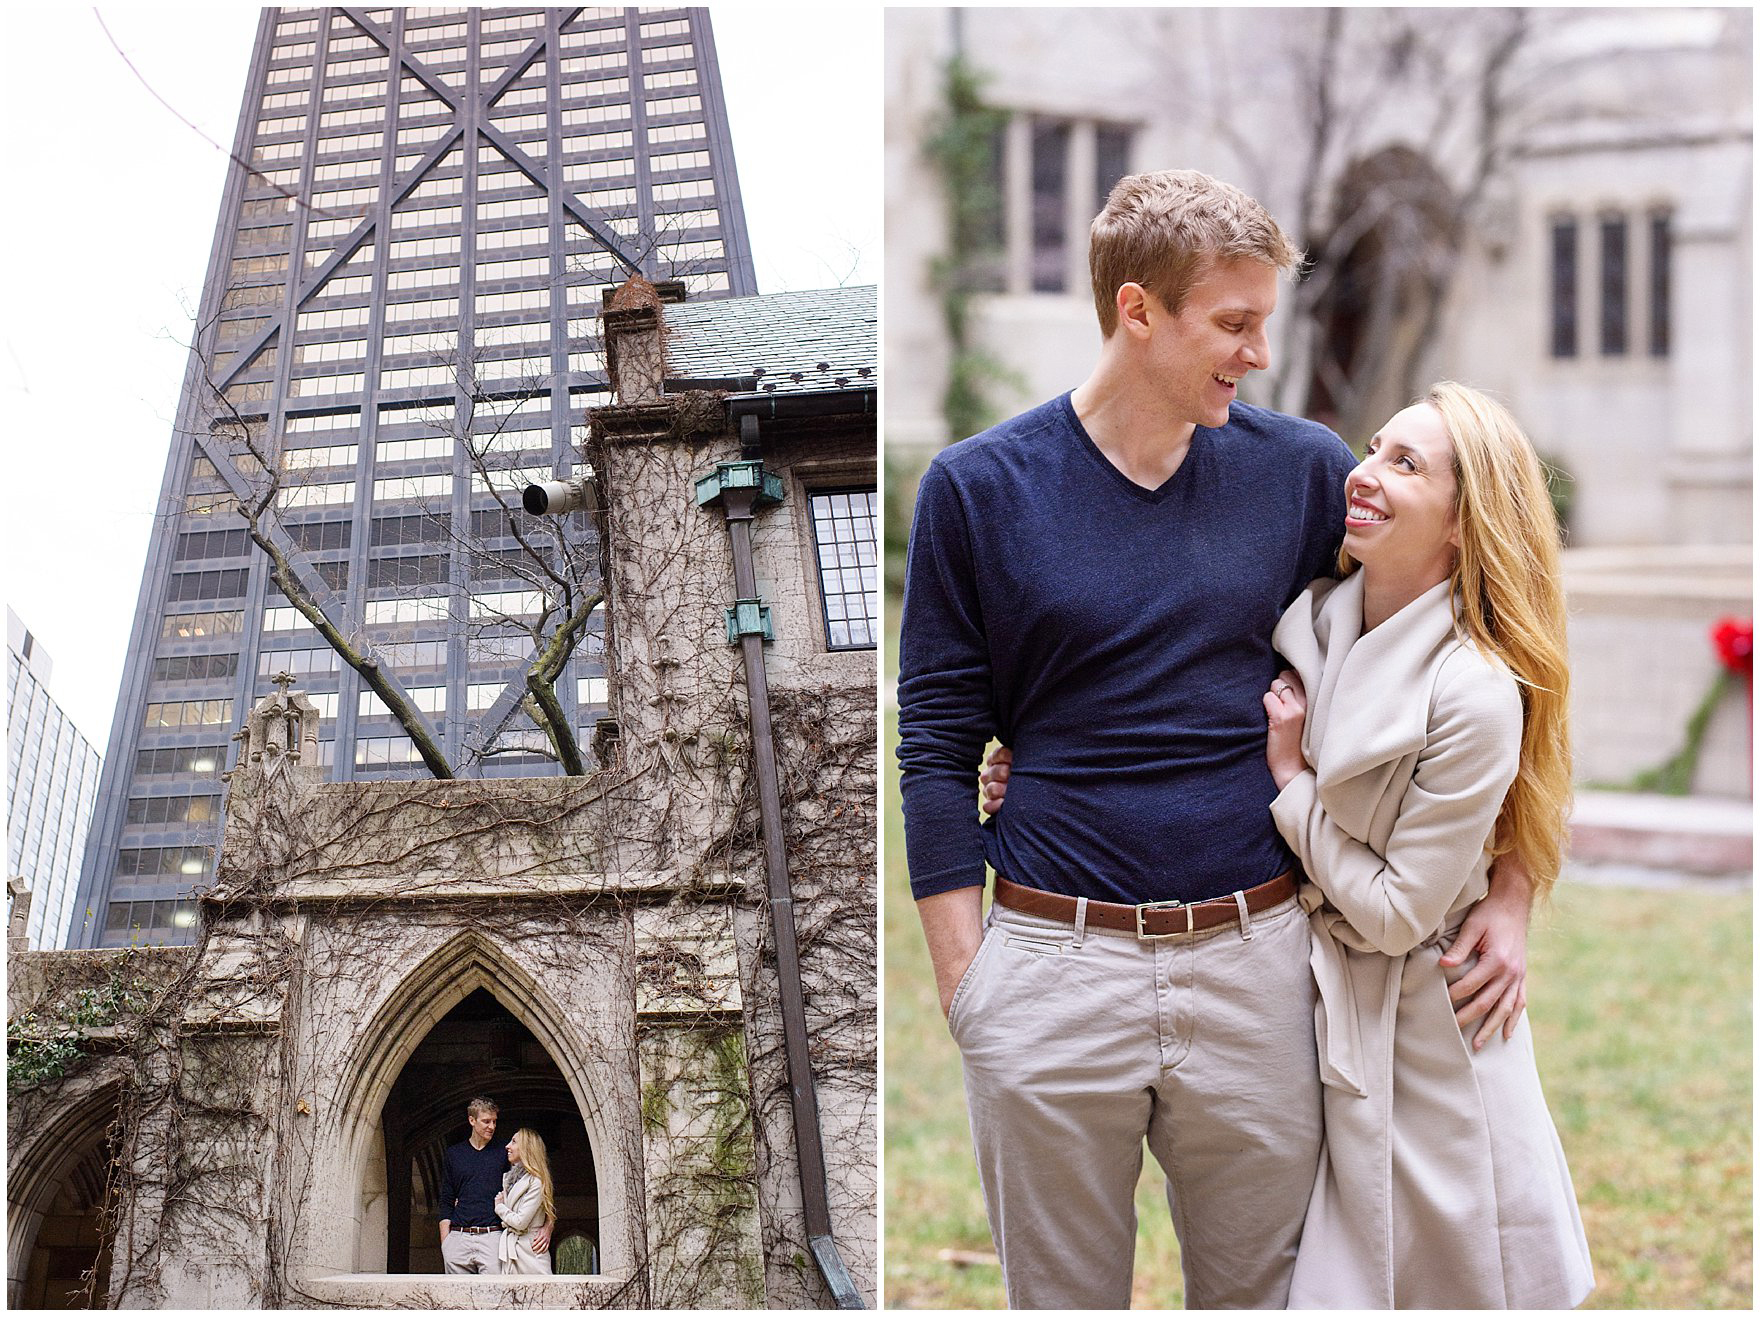 A couple laughs and embraces at the Fourth Presbyterian Church during a downtown Chicago classic engagement photography session.